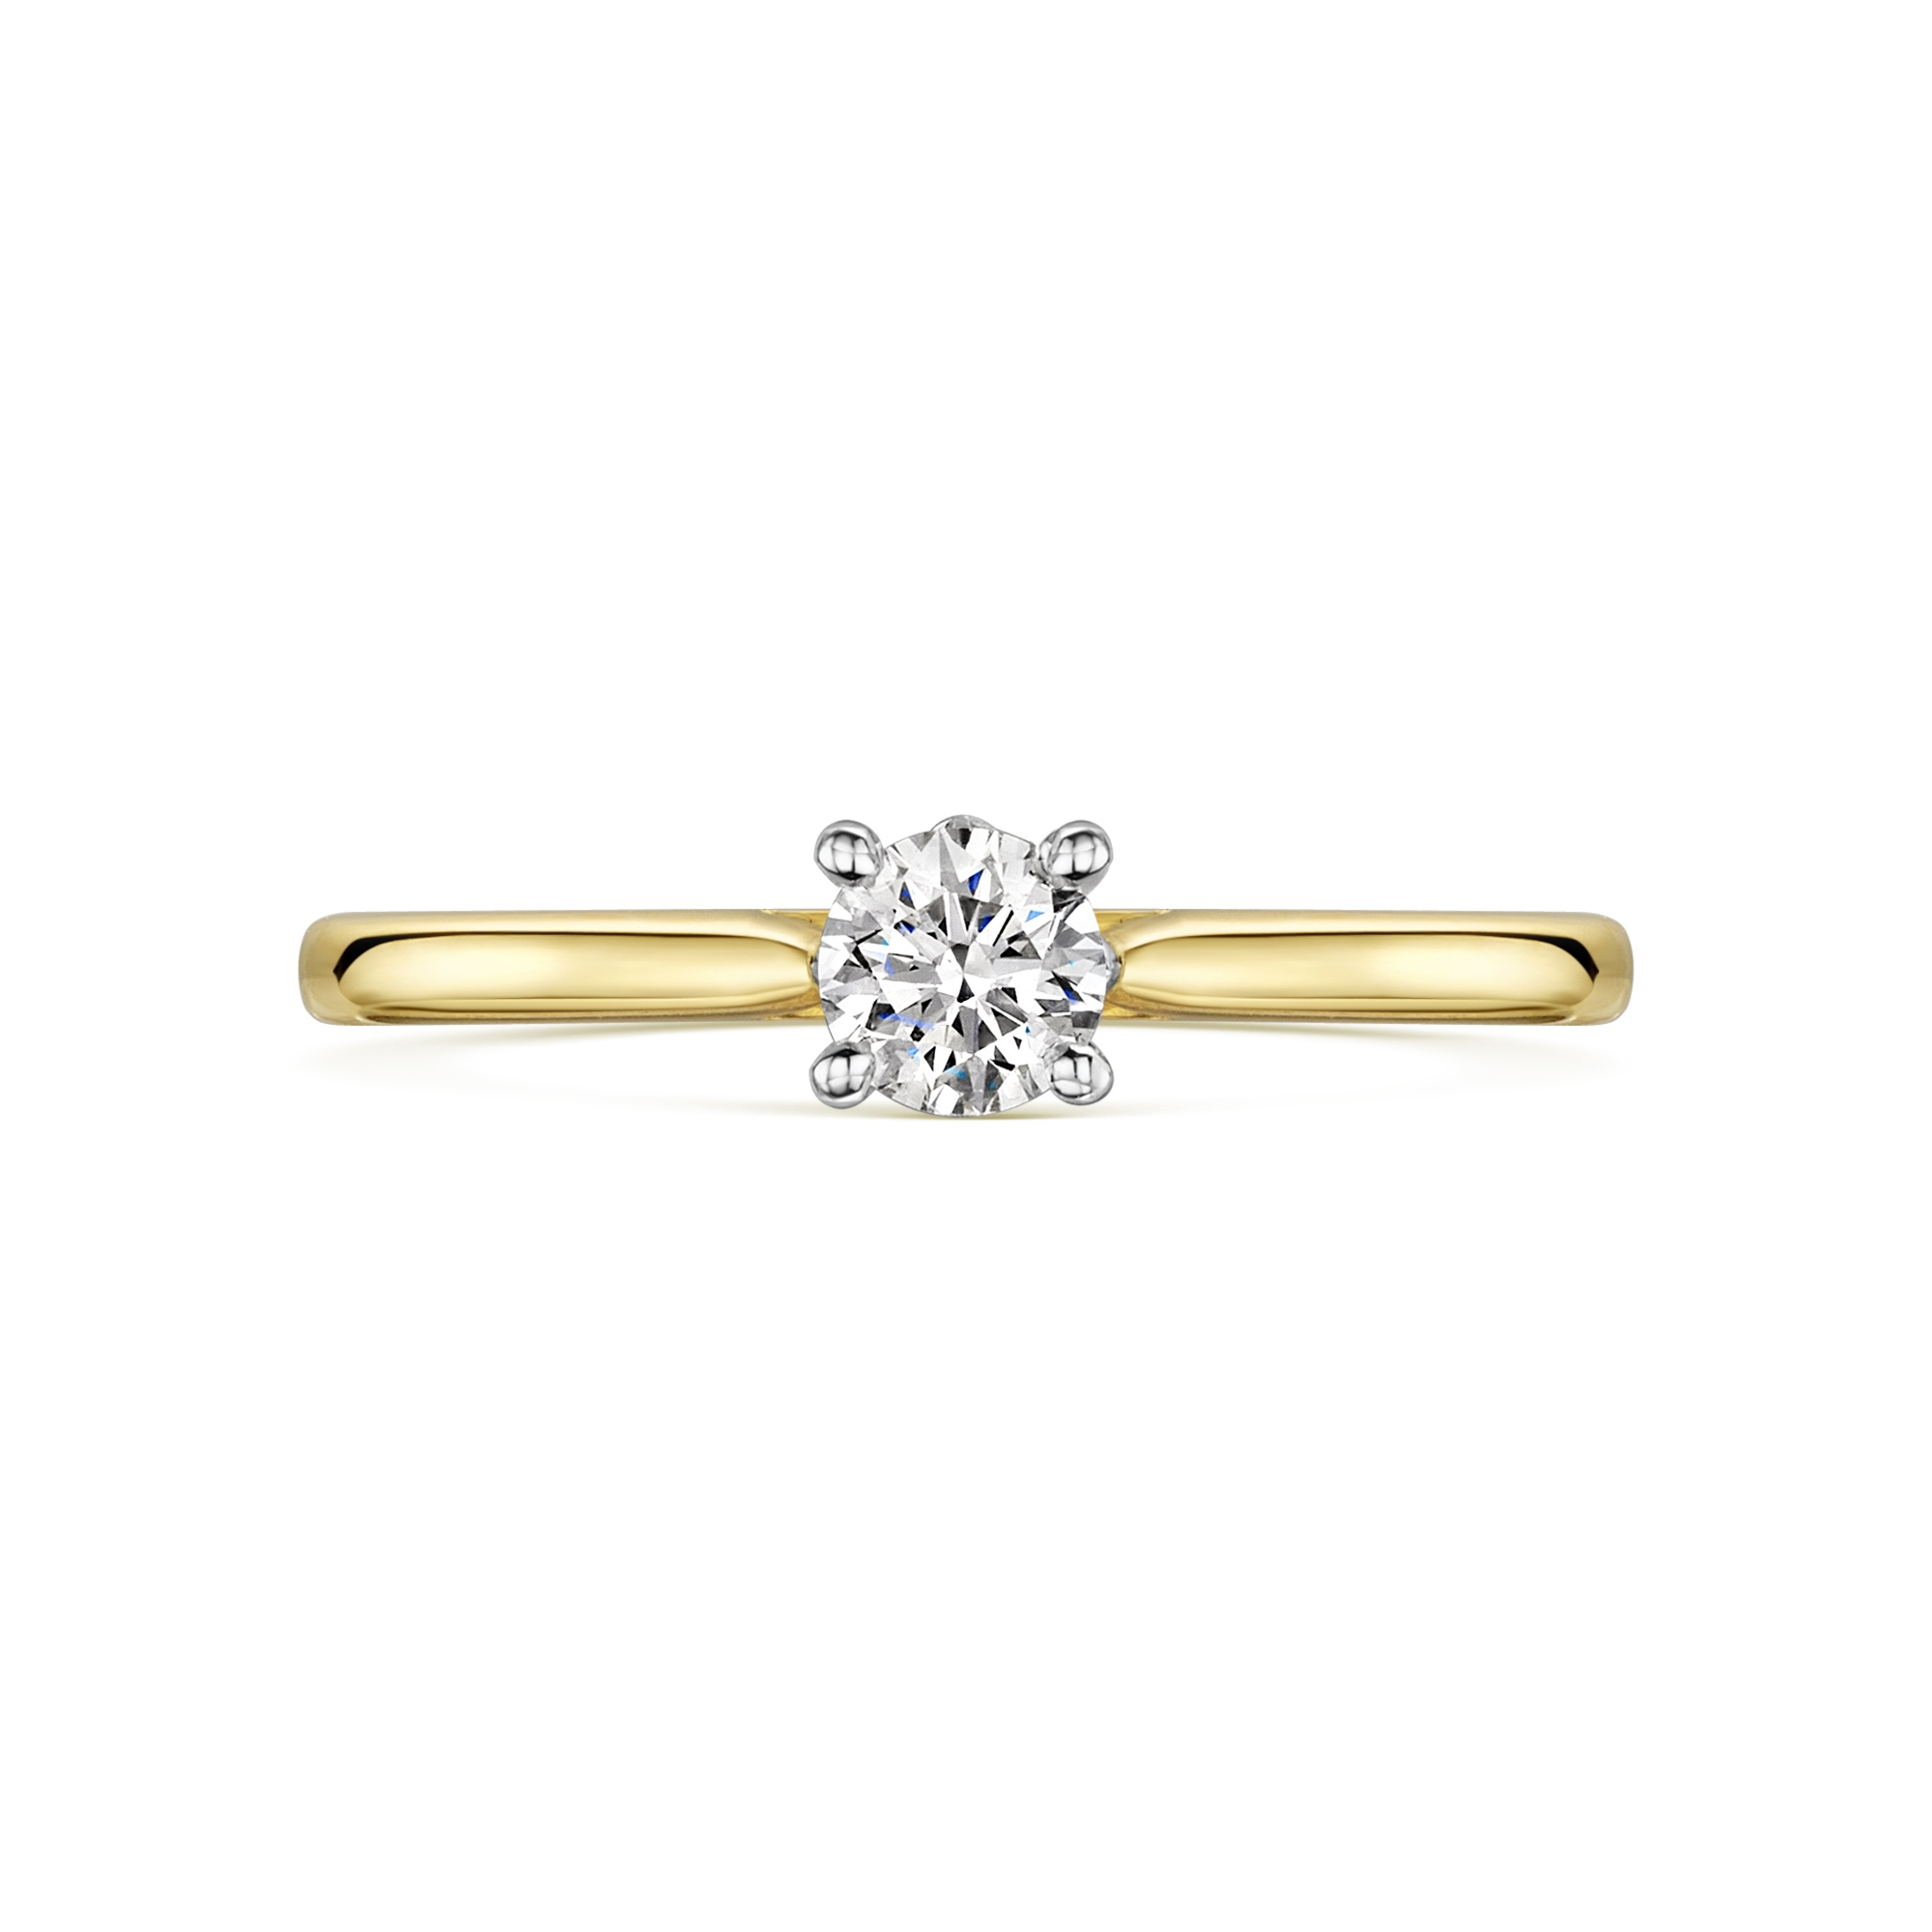 0.30ct 18ct Yellow and White 4 Claw Solitaire